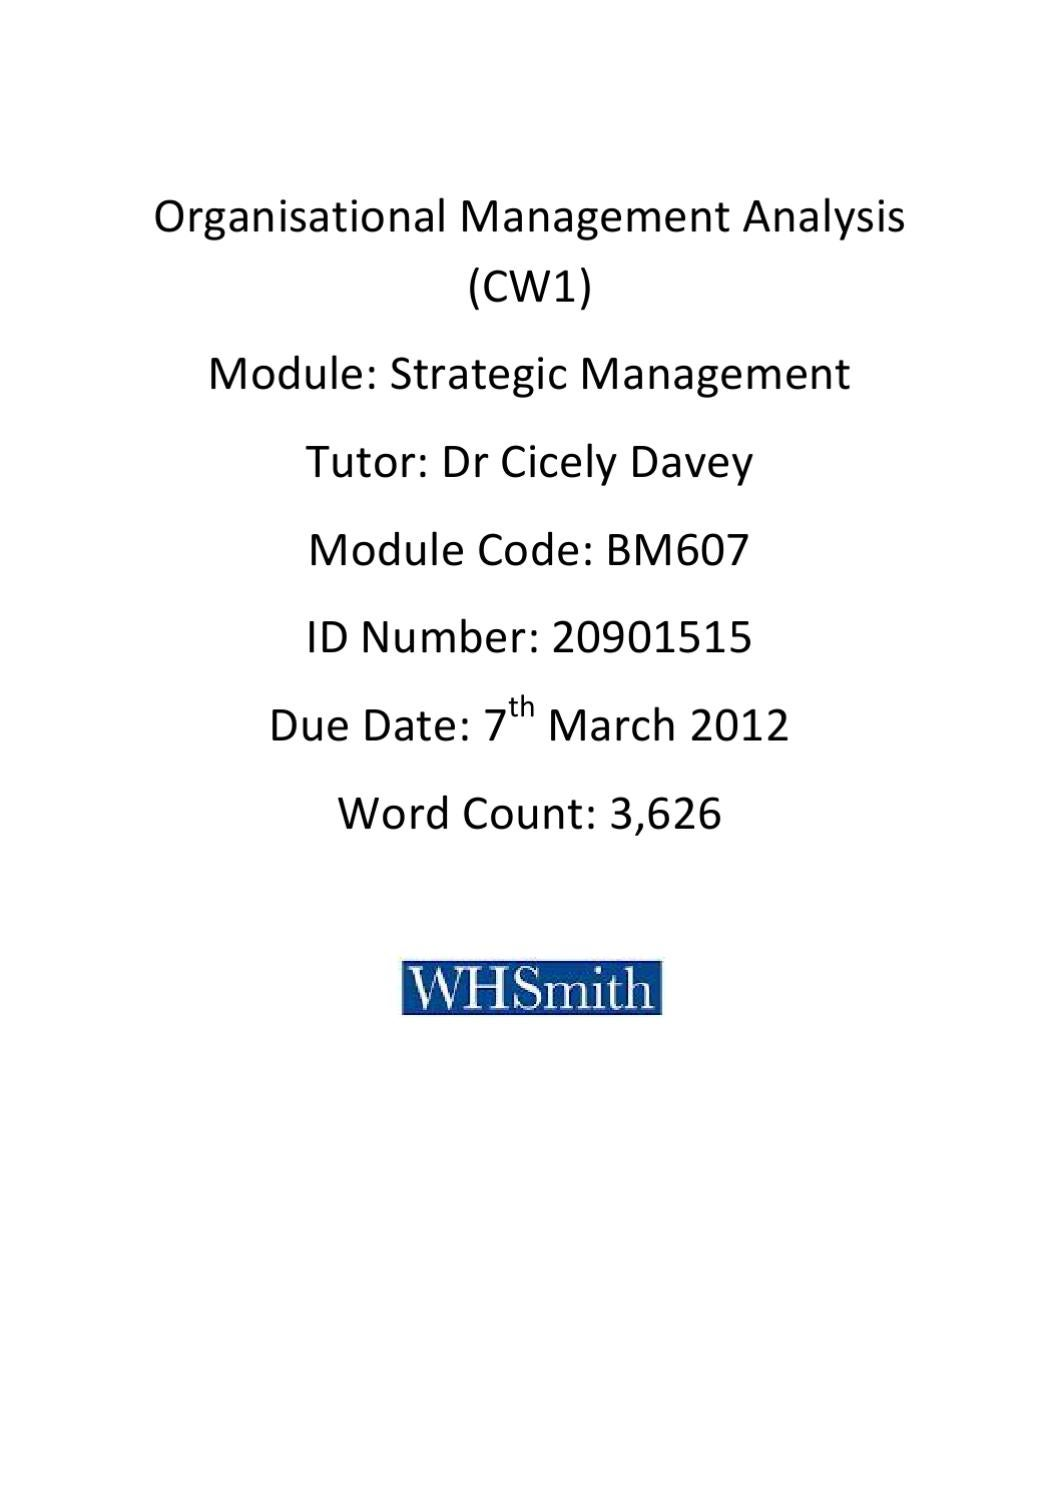 pest analysis for whsmith Free pest analysis papers, essays, and research papers.